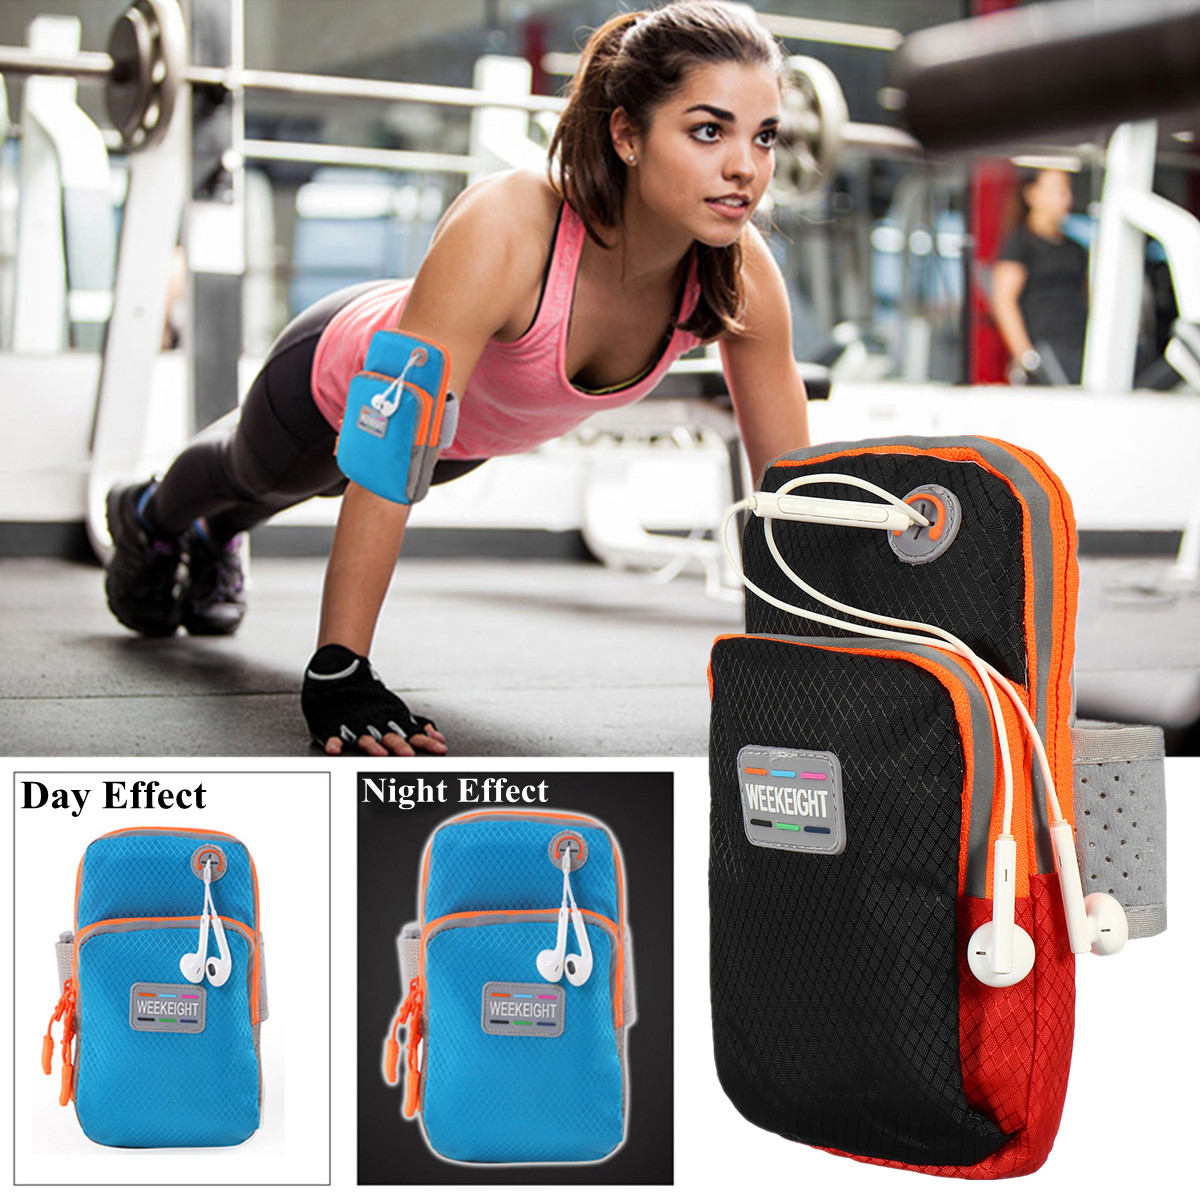 Sports Running Jogging Armband Bag Case For iPhone X/8 Plus/7 Plus/Samsung Galaxy S9 Plus/Note 8